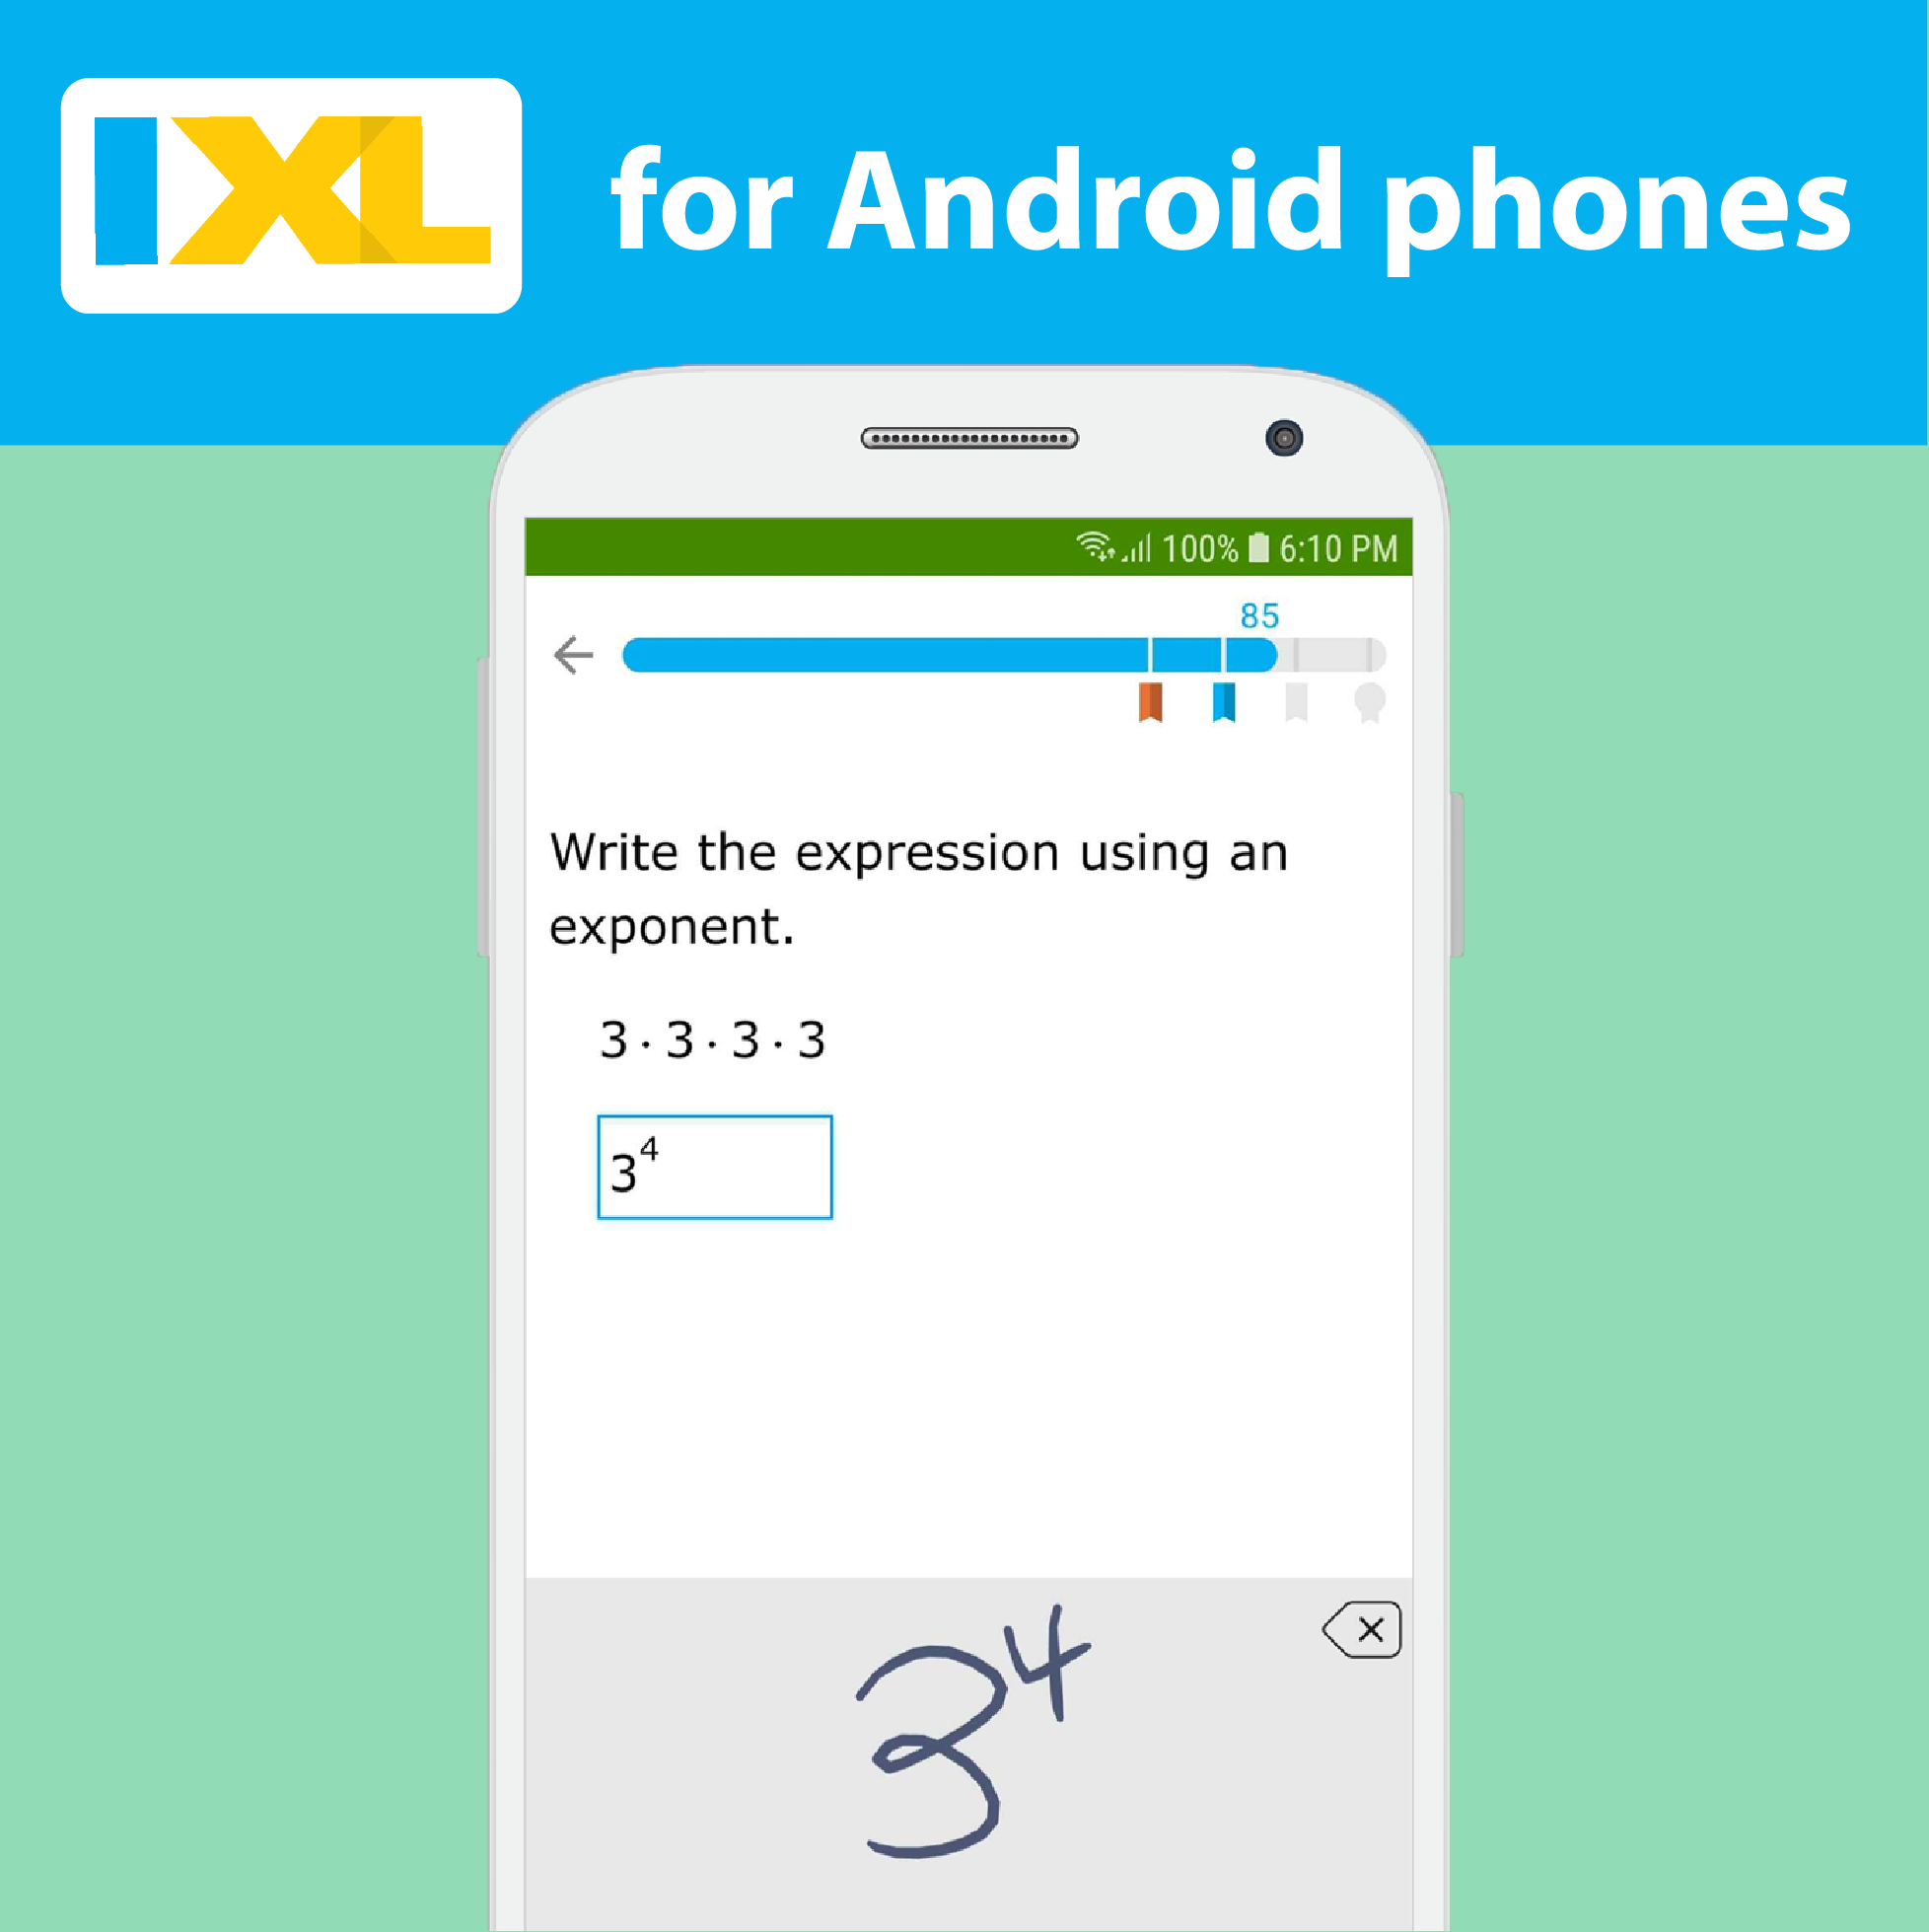 Android users rejoice! The IXL app is now available for